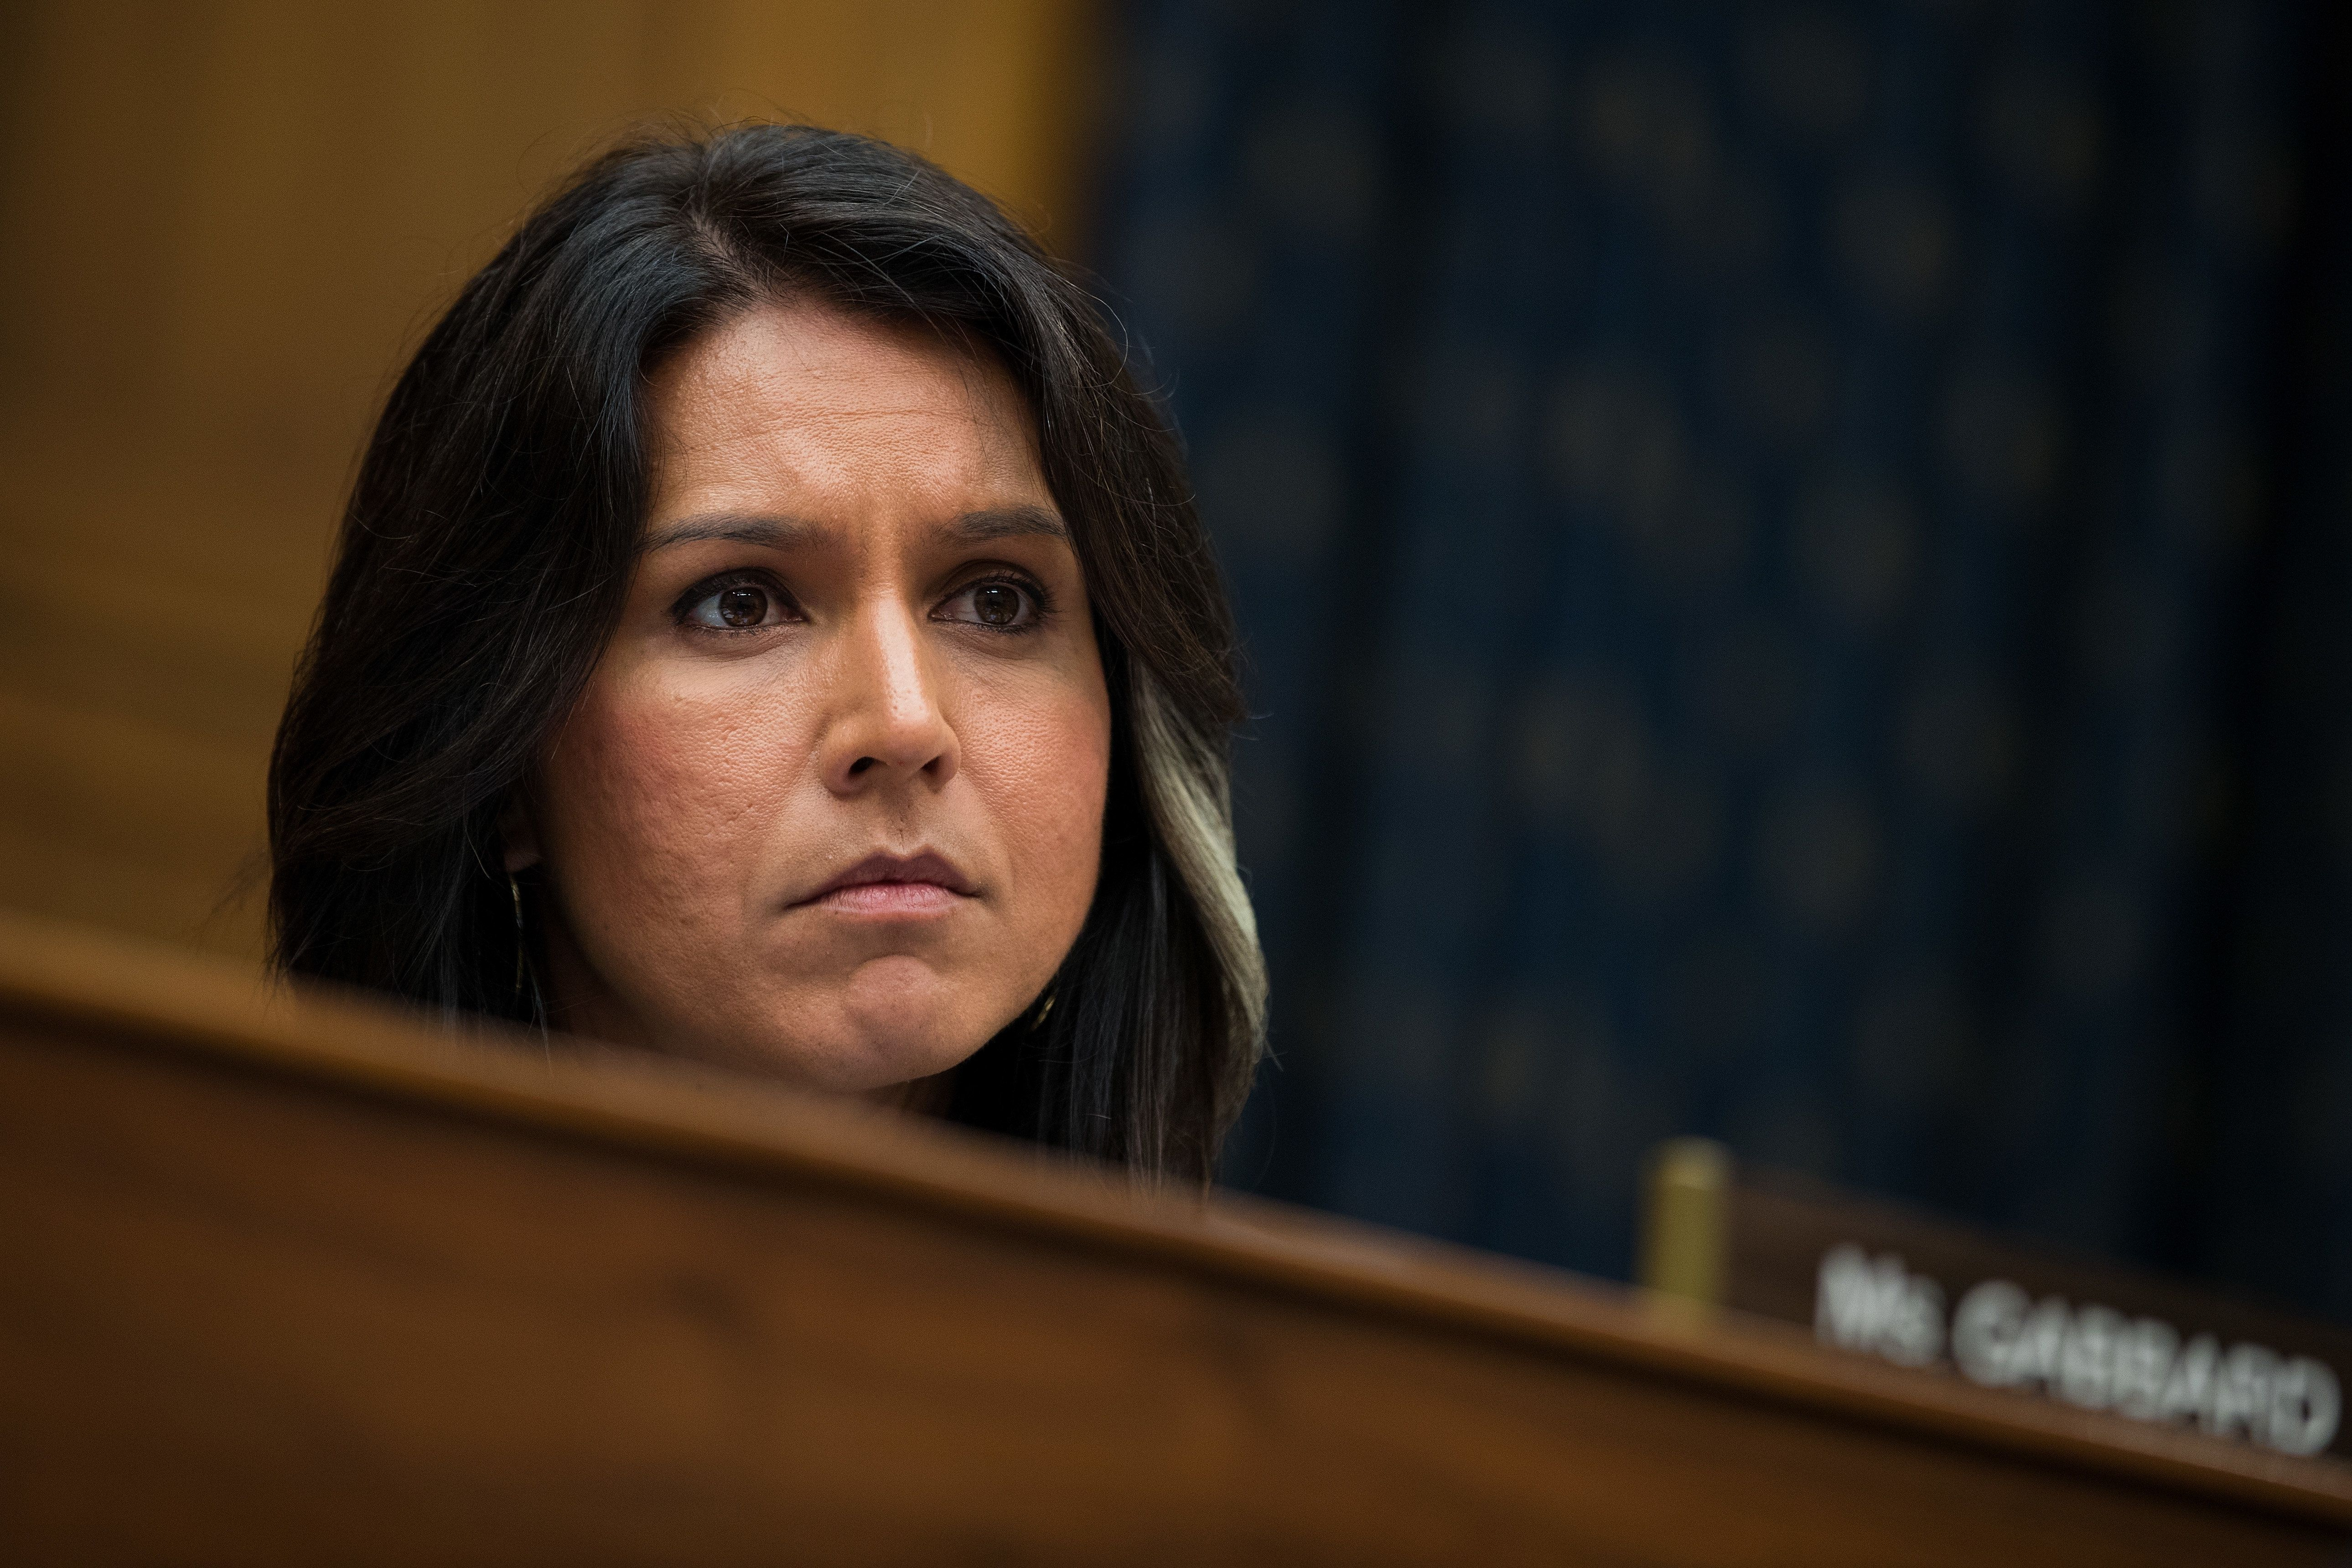 Tulsi Gabbards Syria Views Cost Her Support Of Hawaii